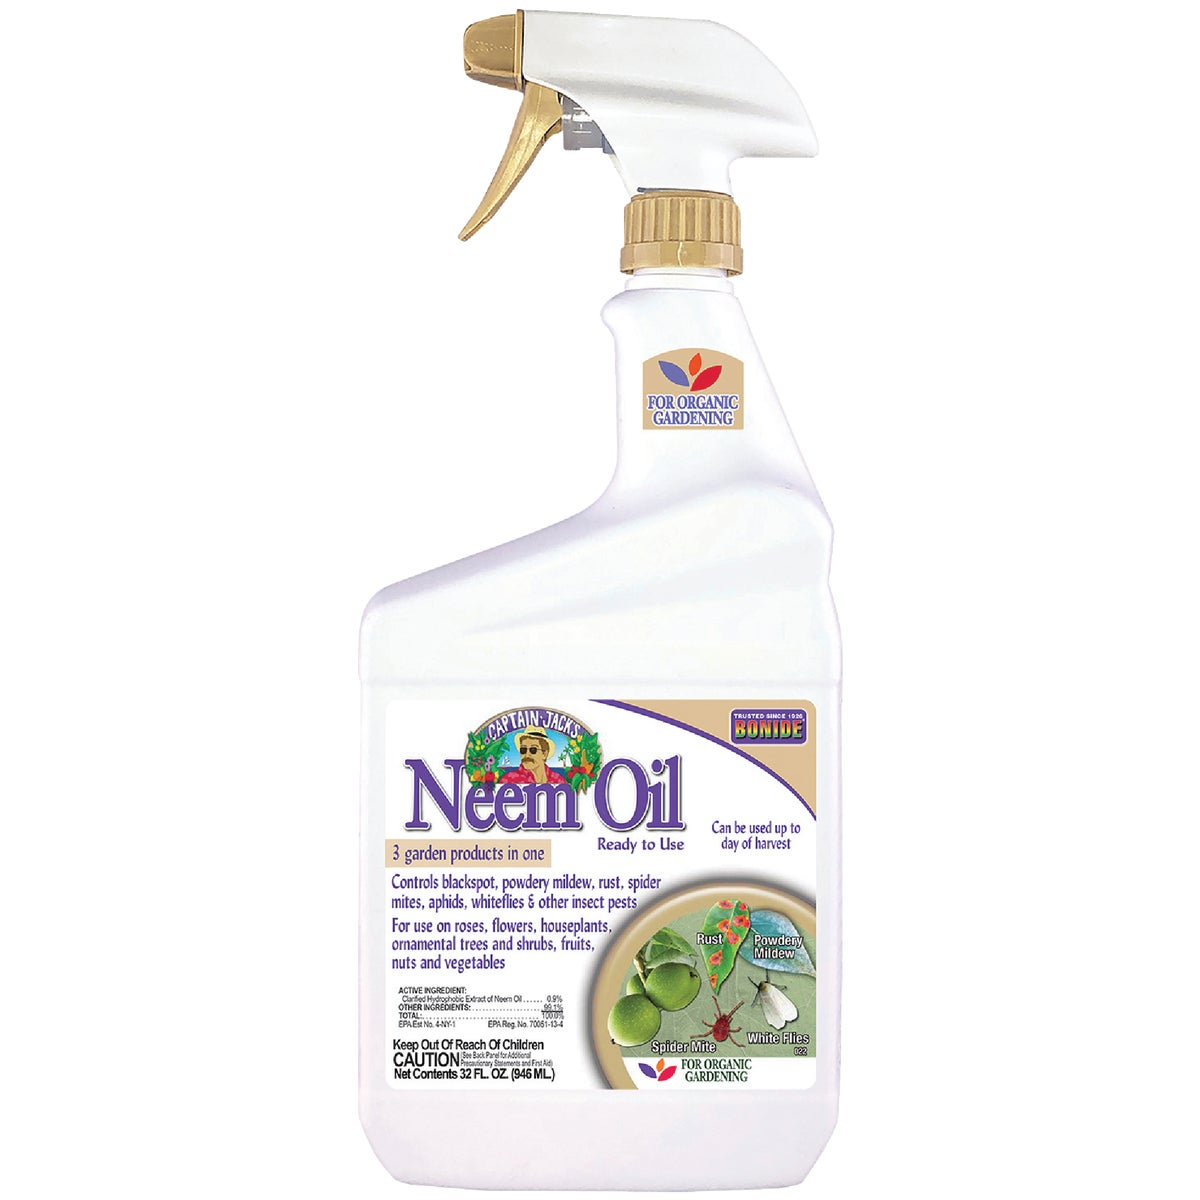 NEEM OIL RTU QT - 022 by Bonide